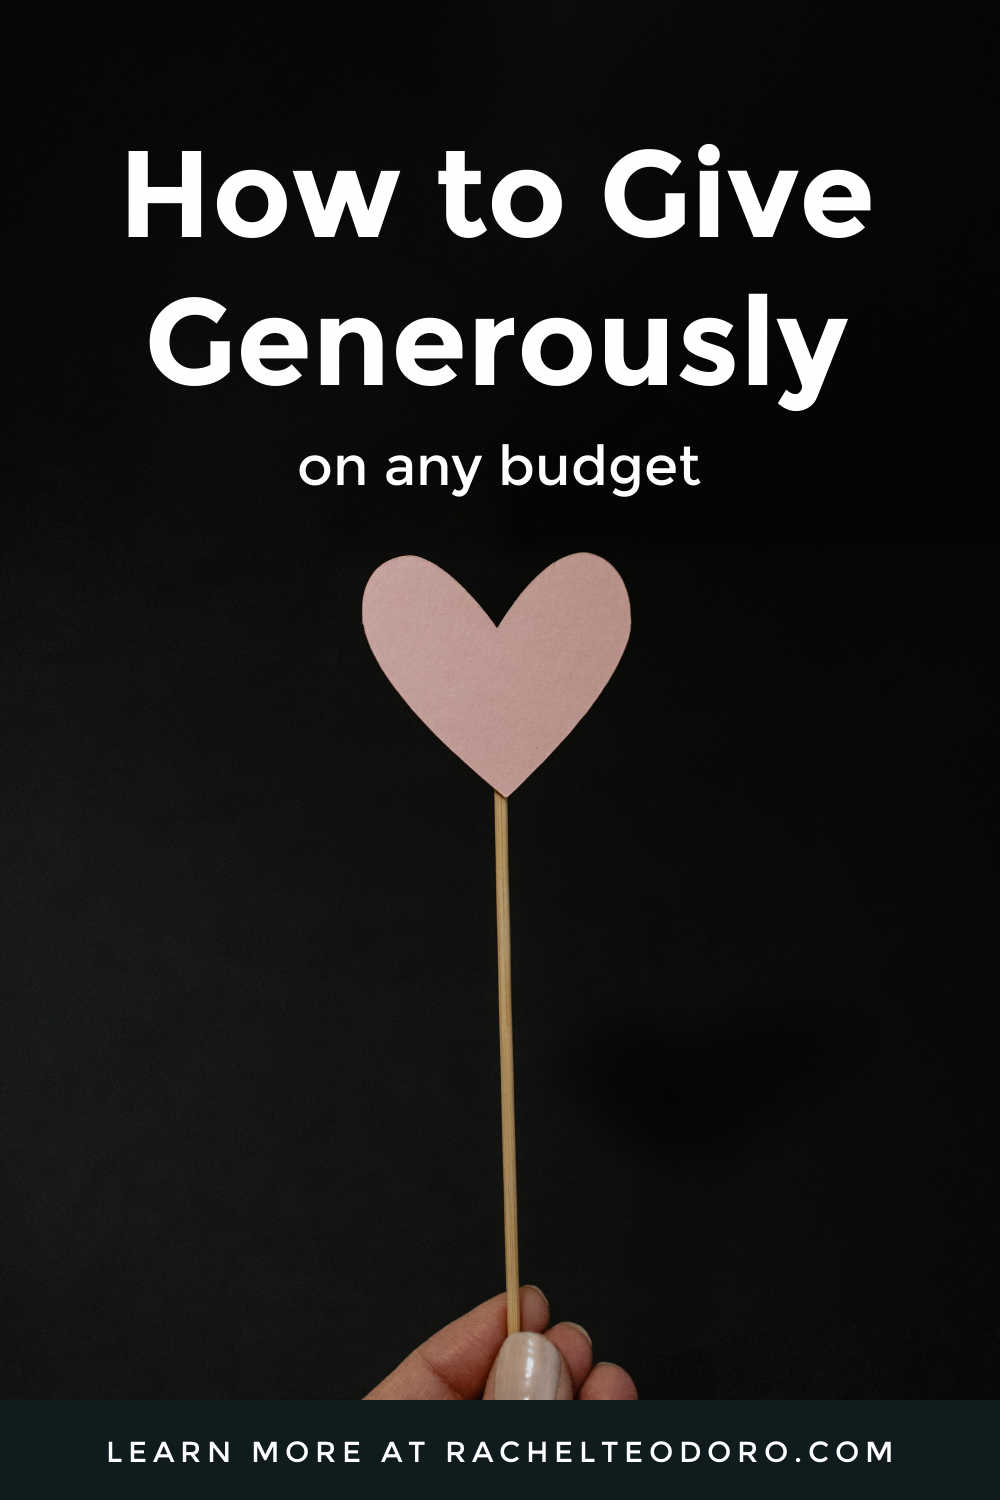 GIVE GENEROUSLY ON ANY BUDGET